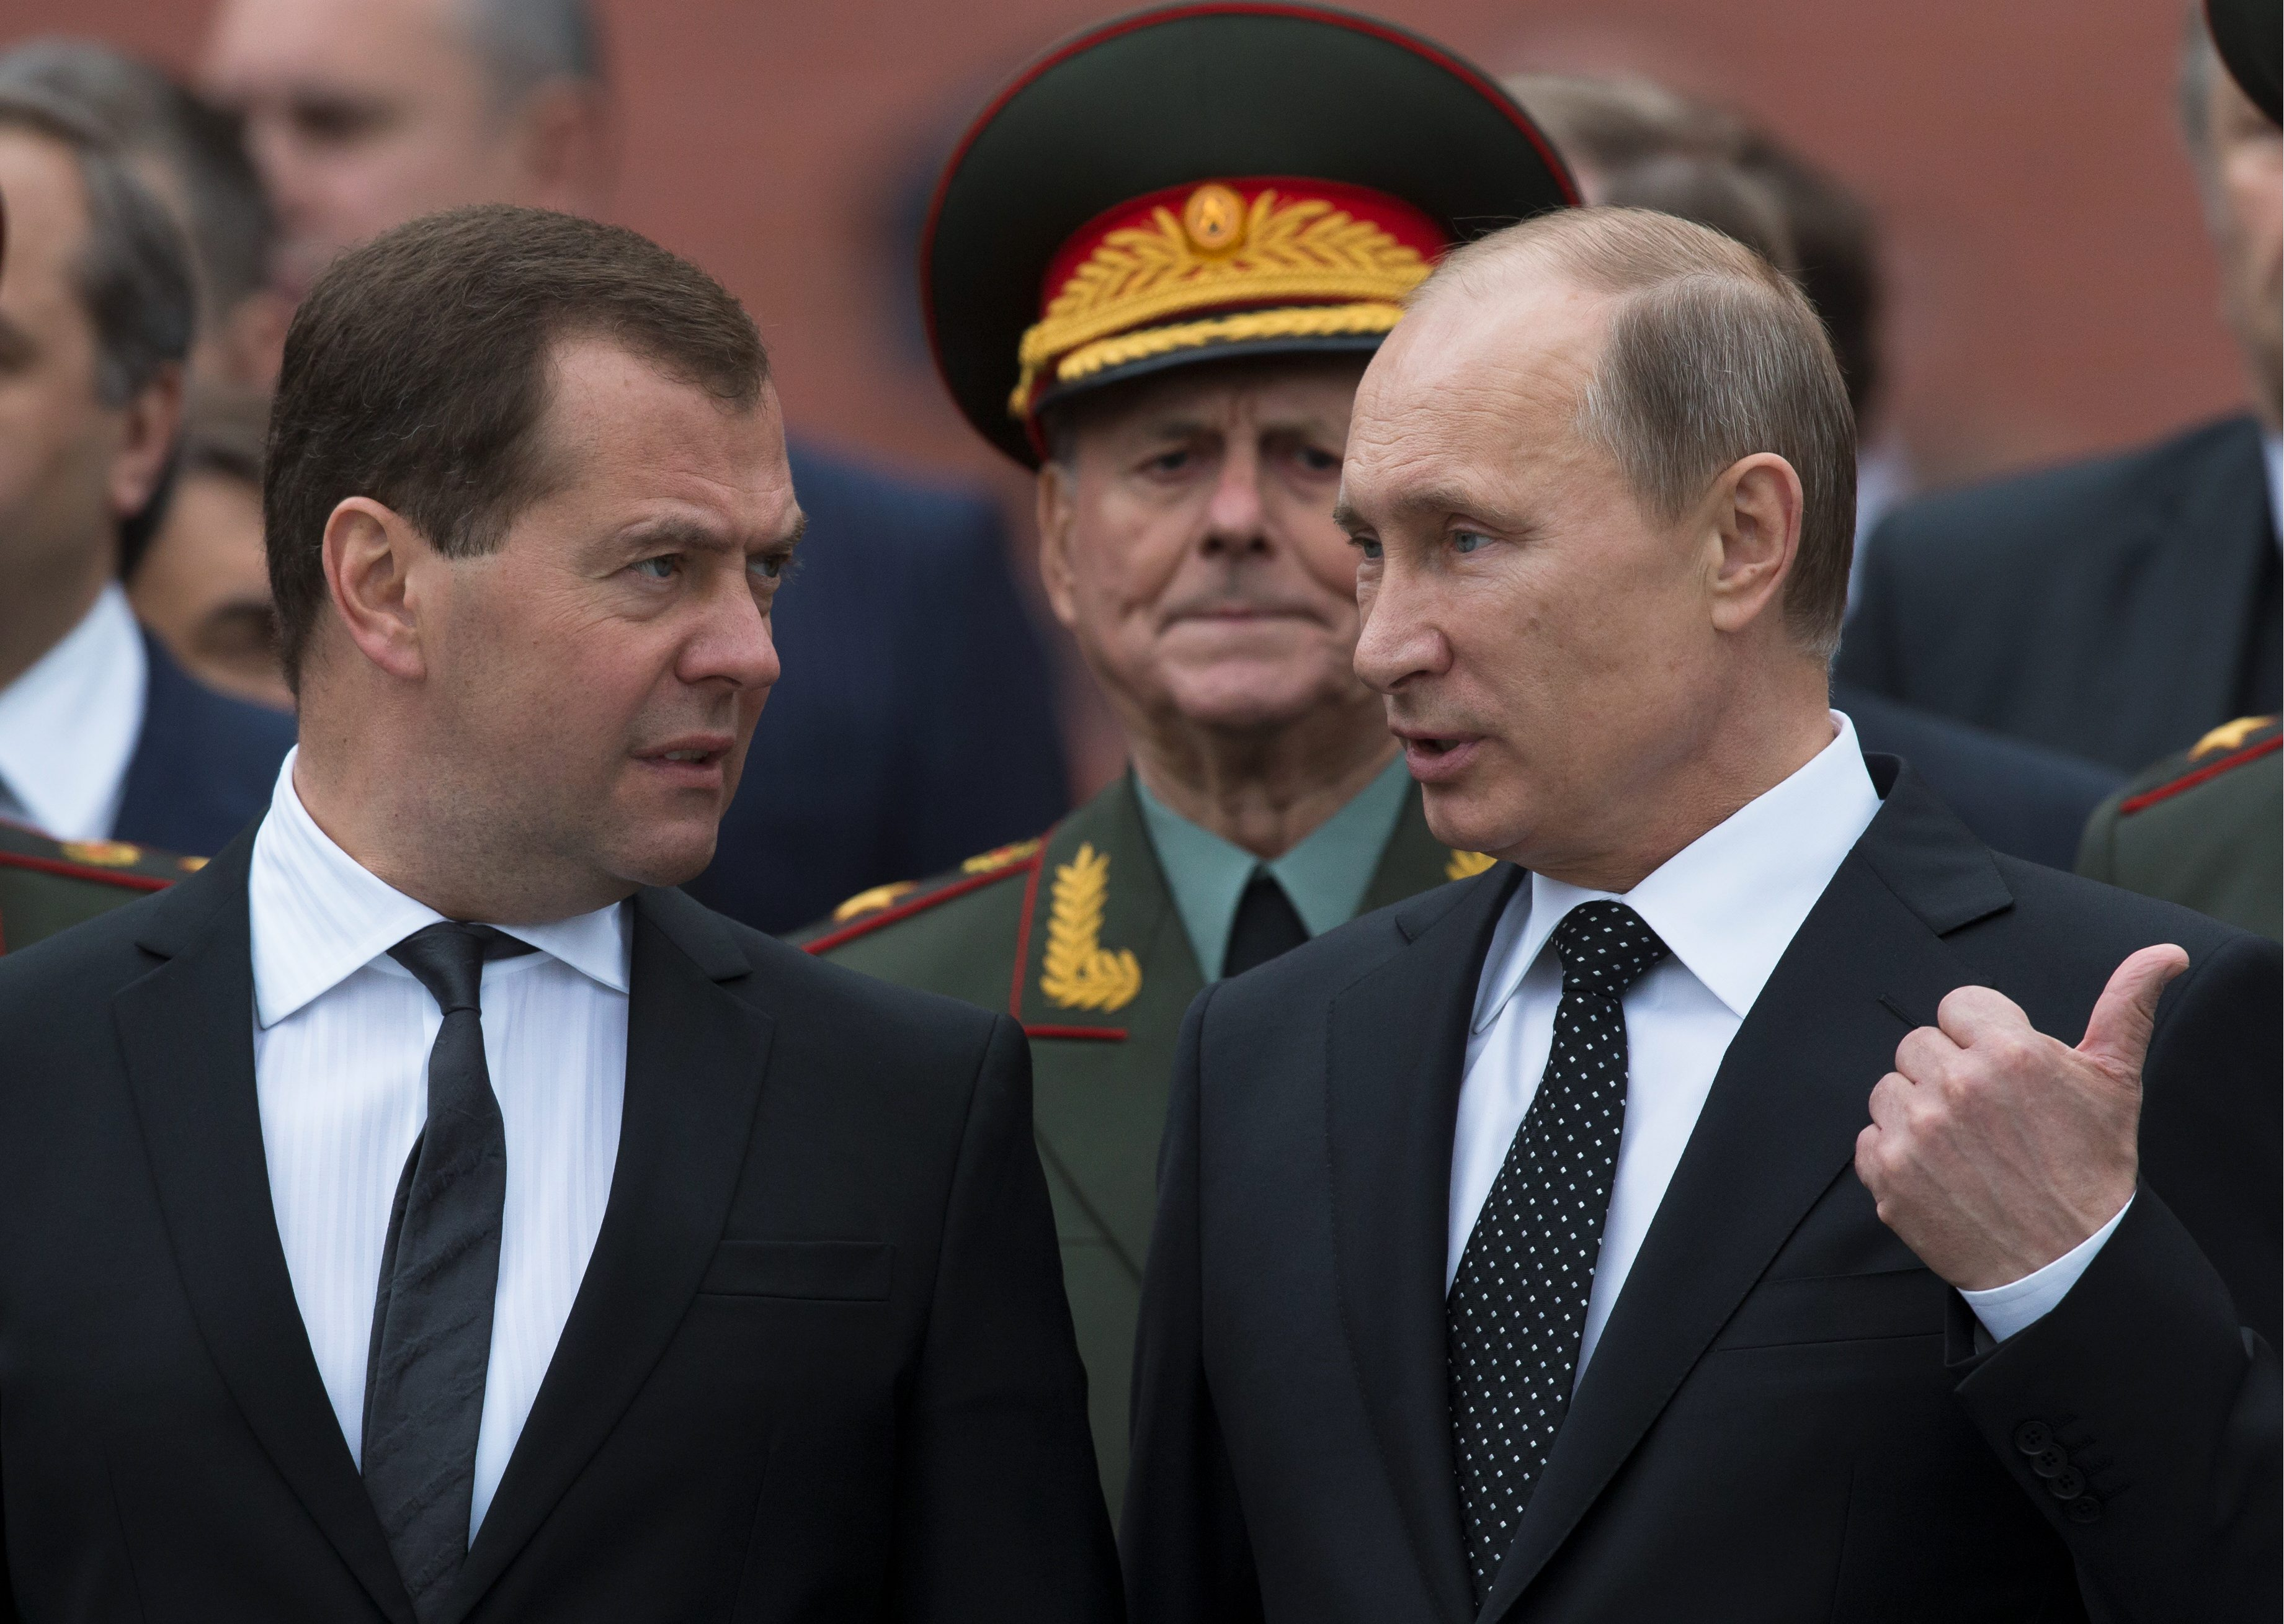 Vladimir Putin and Dmitry Medvedev will take part in the agricultural meeting in the Stavropol region 38